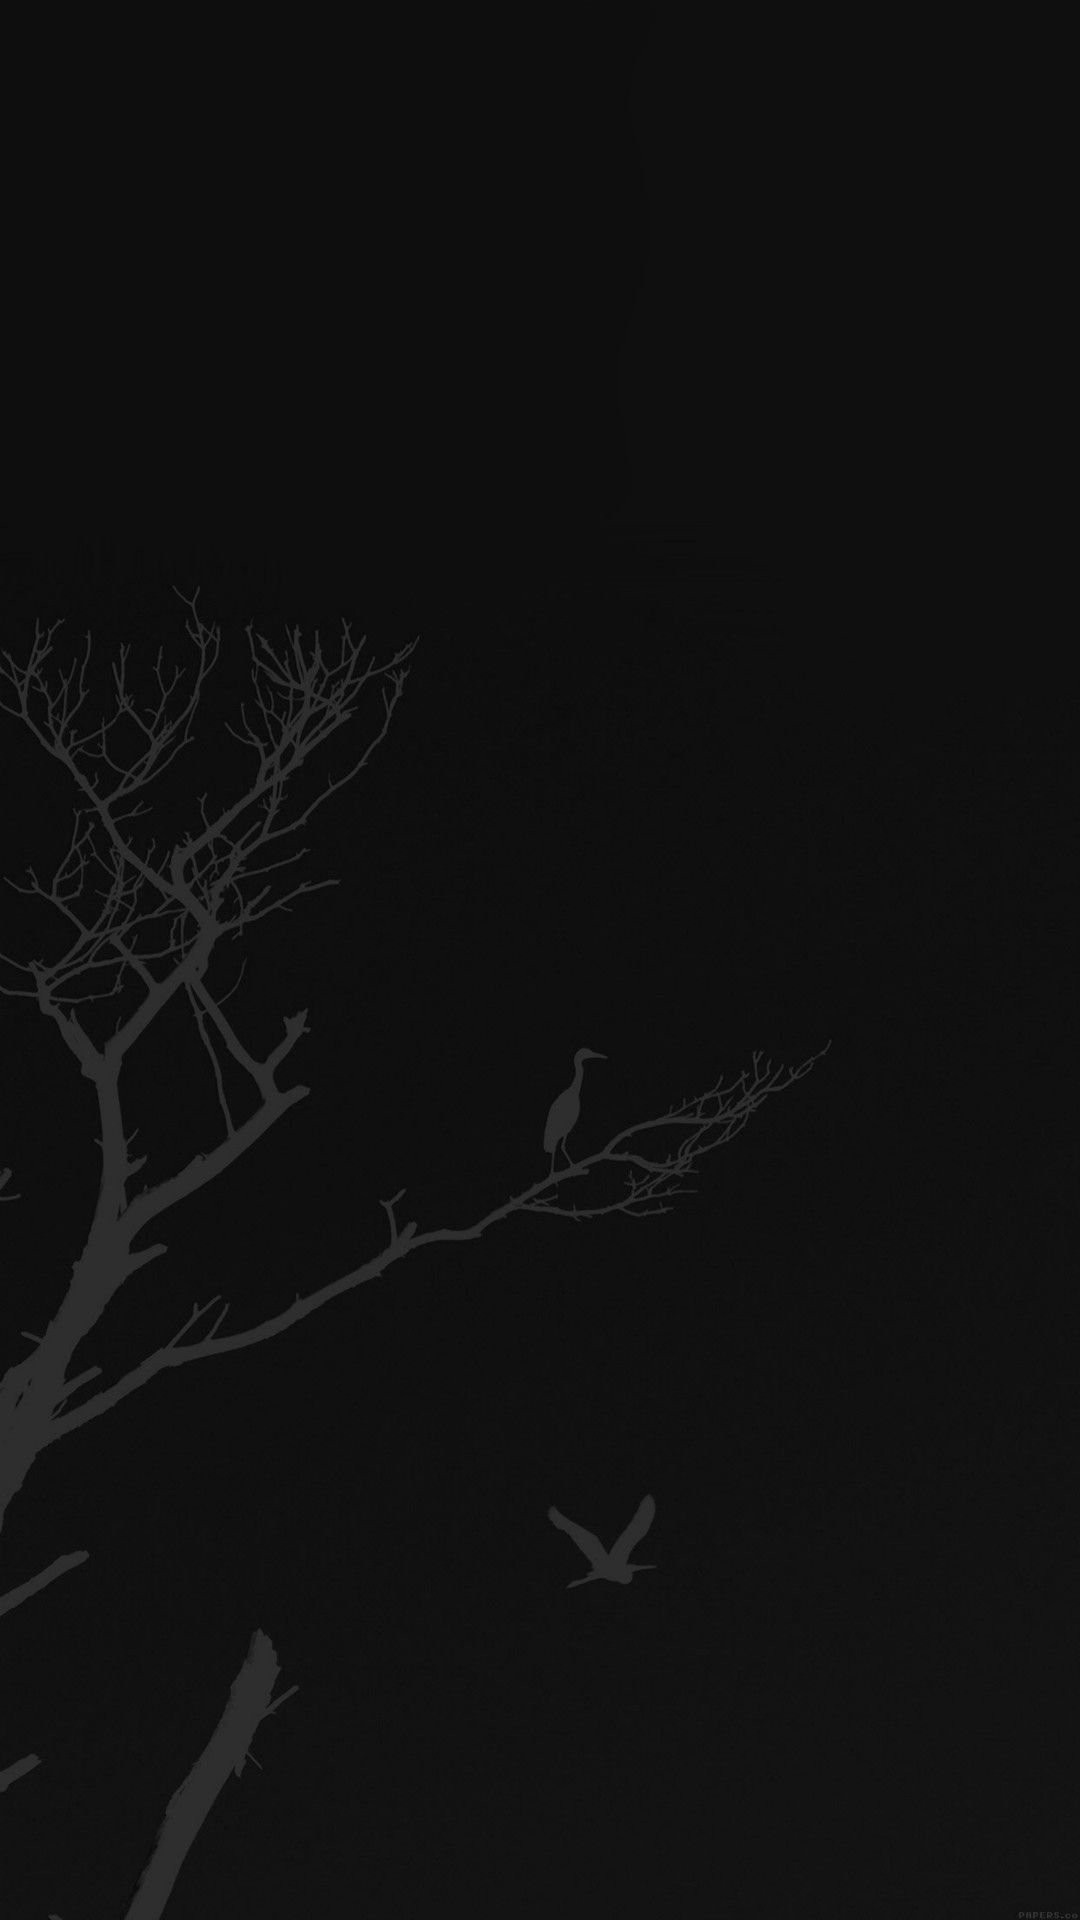 Dark Wallpapers Hd Resolution Hupages Download Iphone